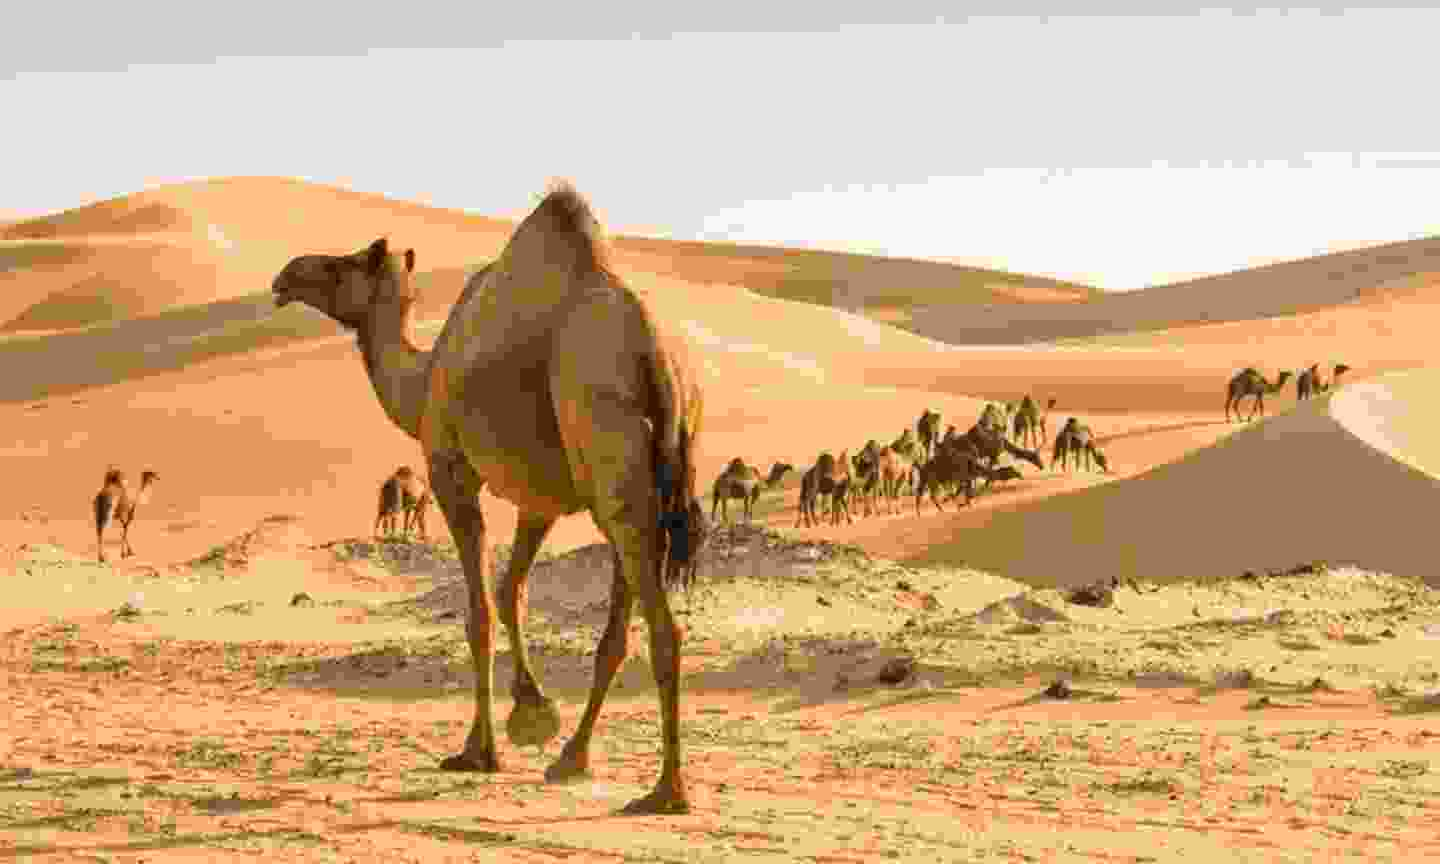 Camels in Oman (Holiday Architects)